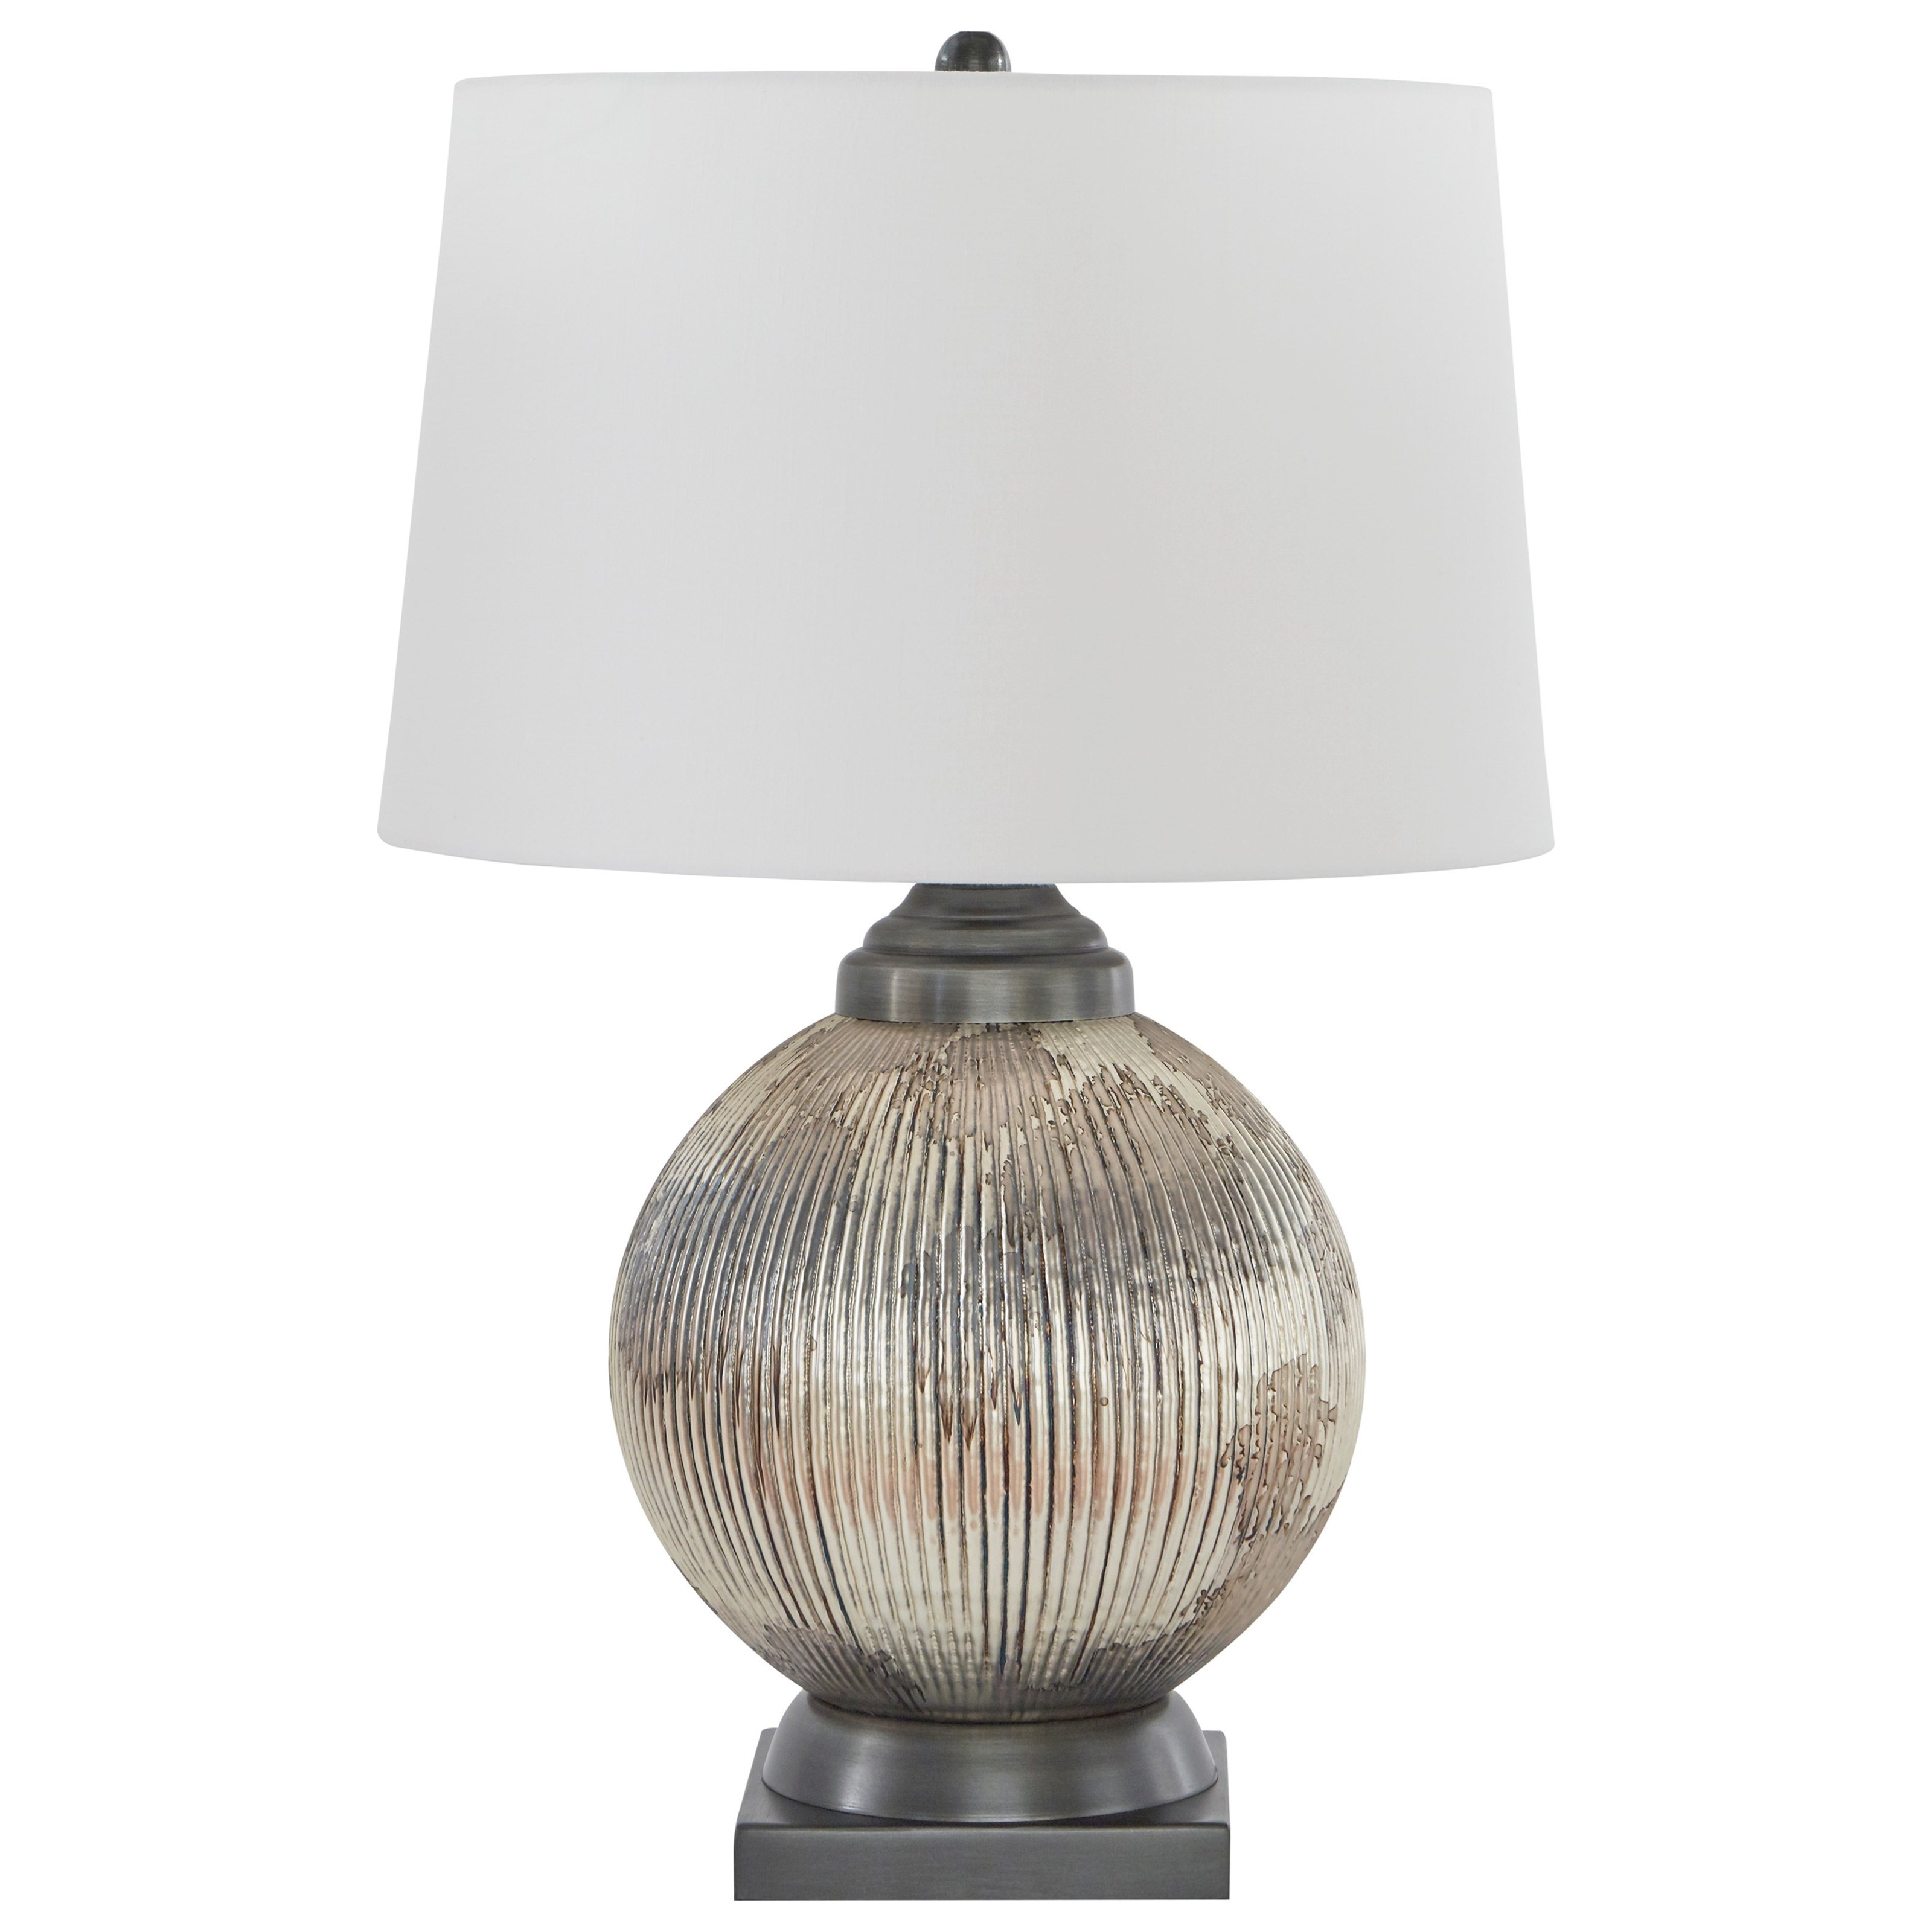 Lamps - Traditional Classics Cailan Silver/Bronze Finish Glass Table Lamp by Signature at Walker's Furniture